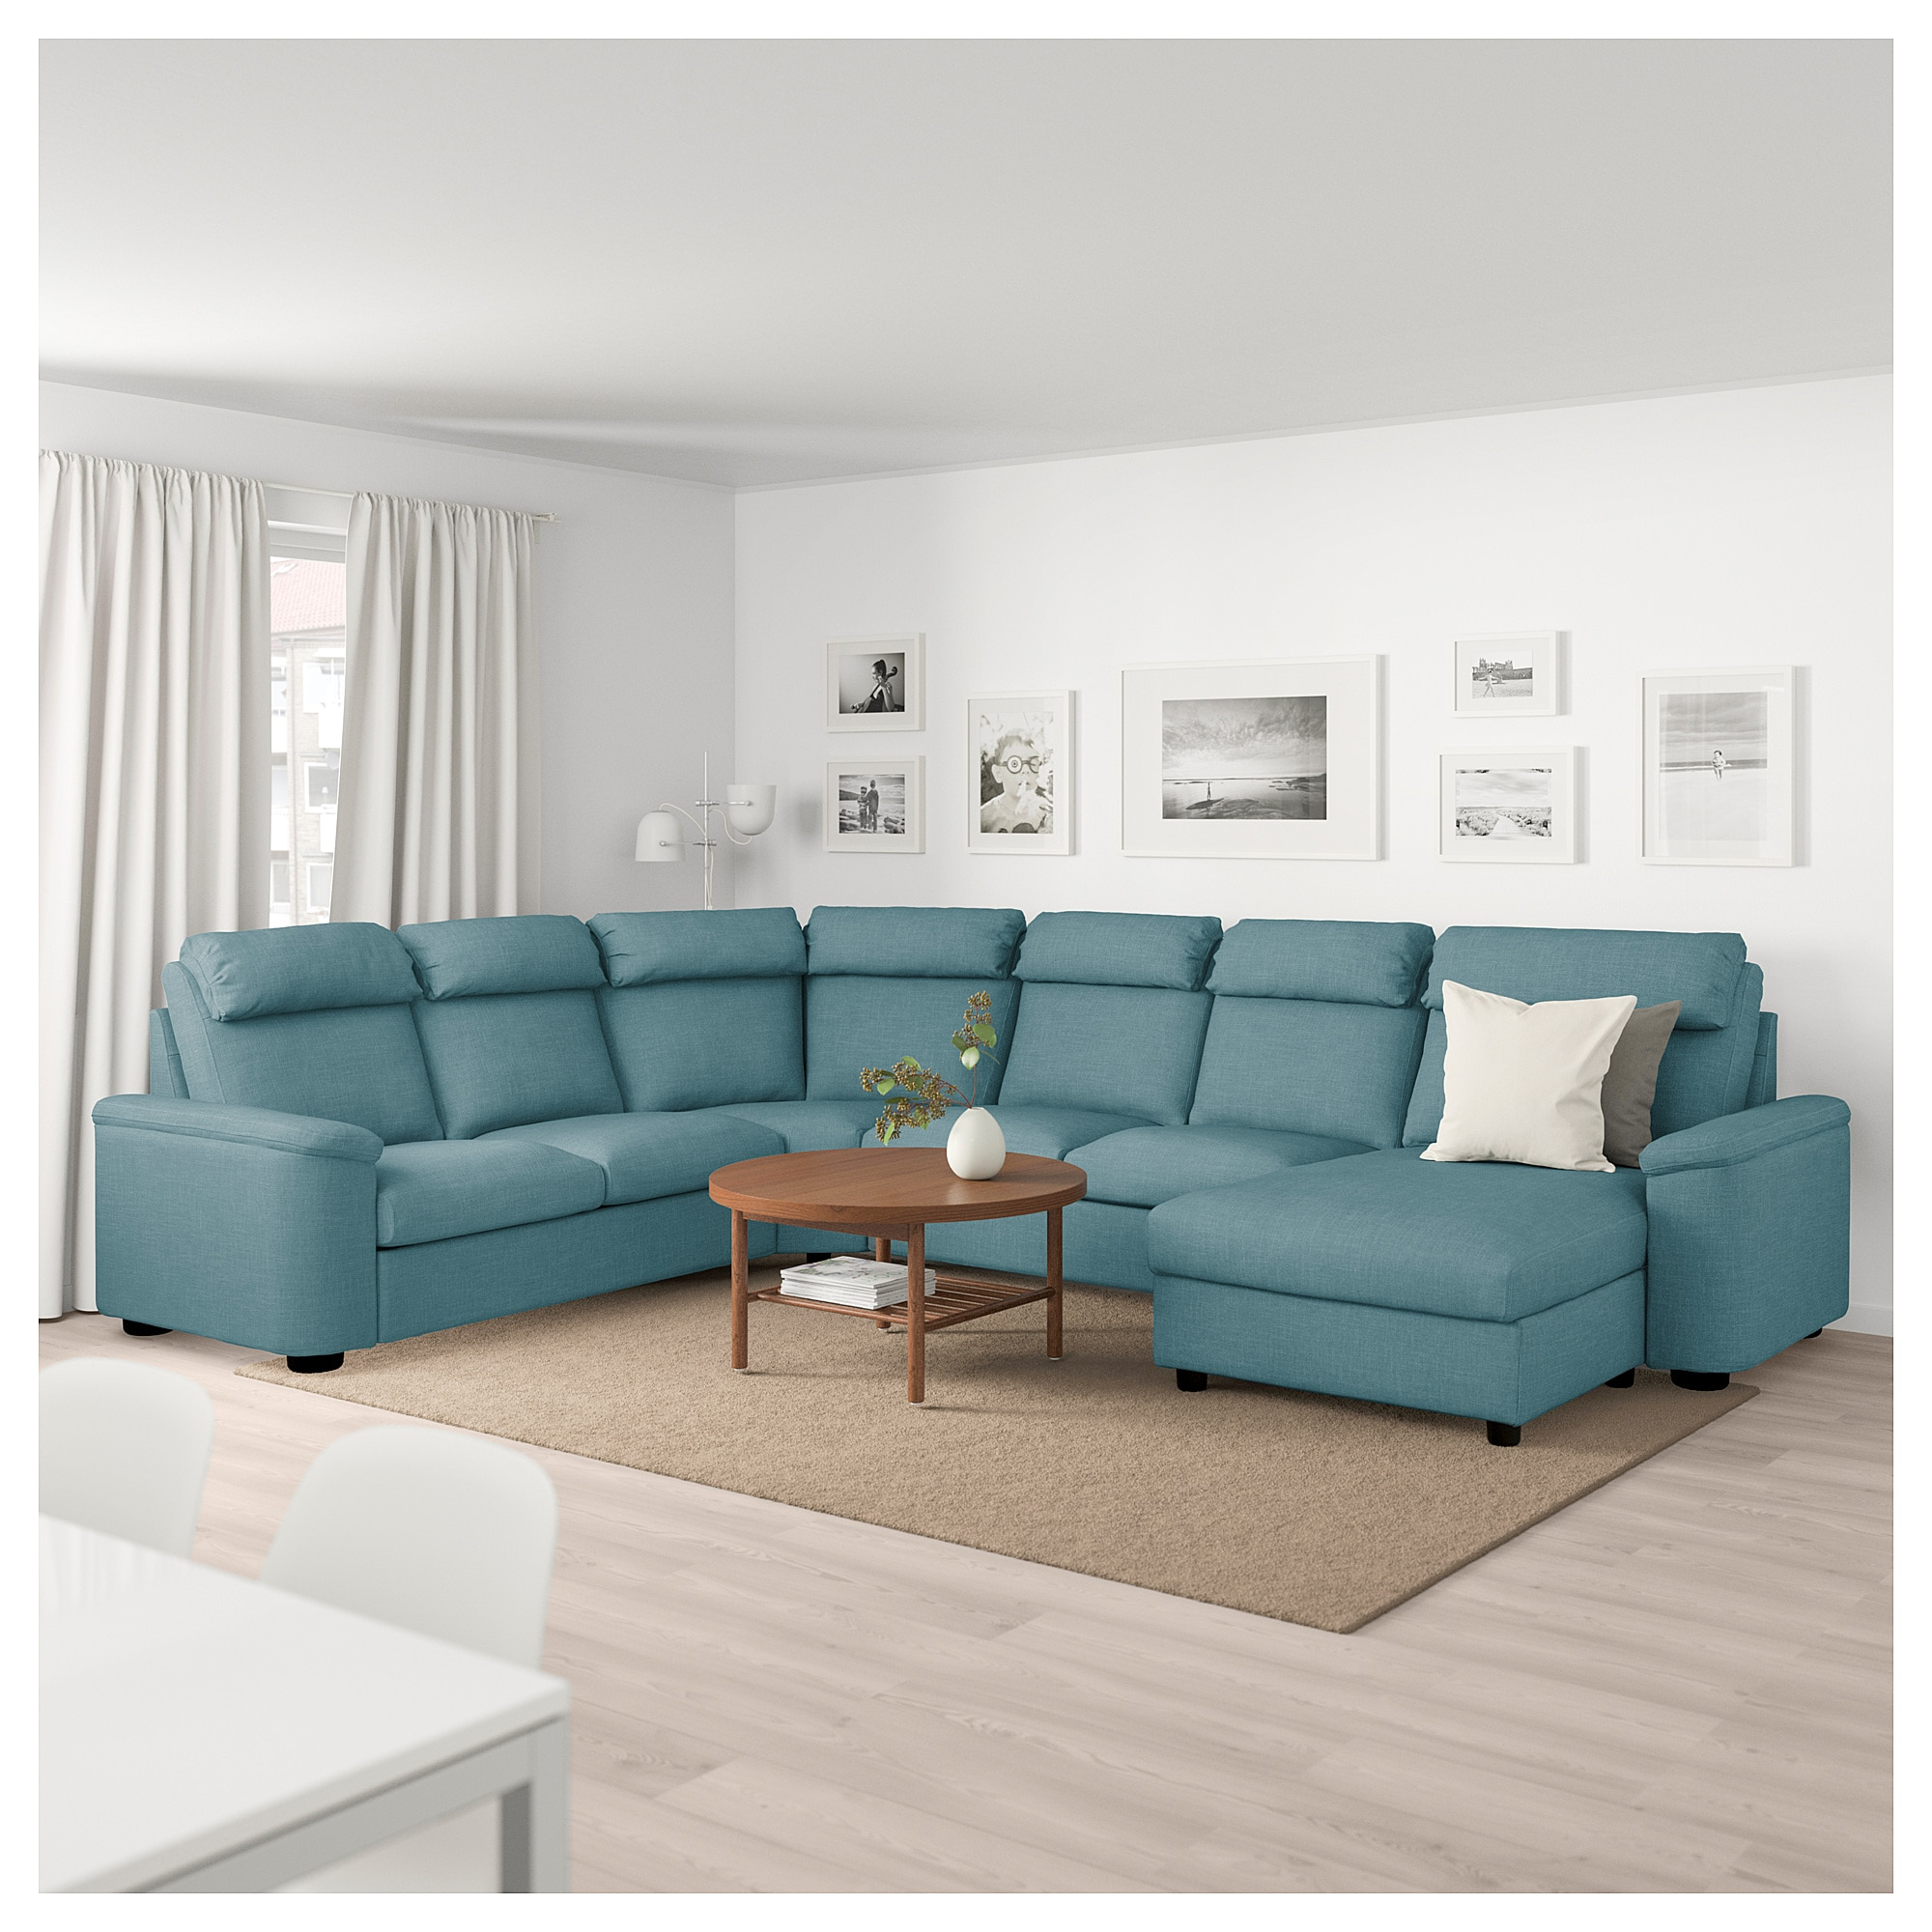 Lidhult Sectional 5 Seat With Chaise Gassebol Blue Gray Ikea Corner Sofa Beige And Grey Living Room Corner Sofa Bed